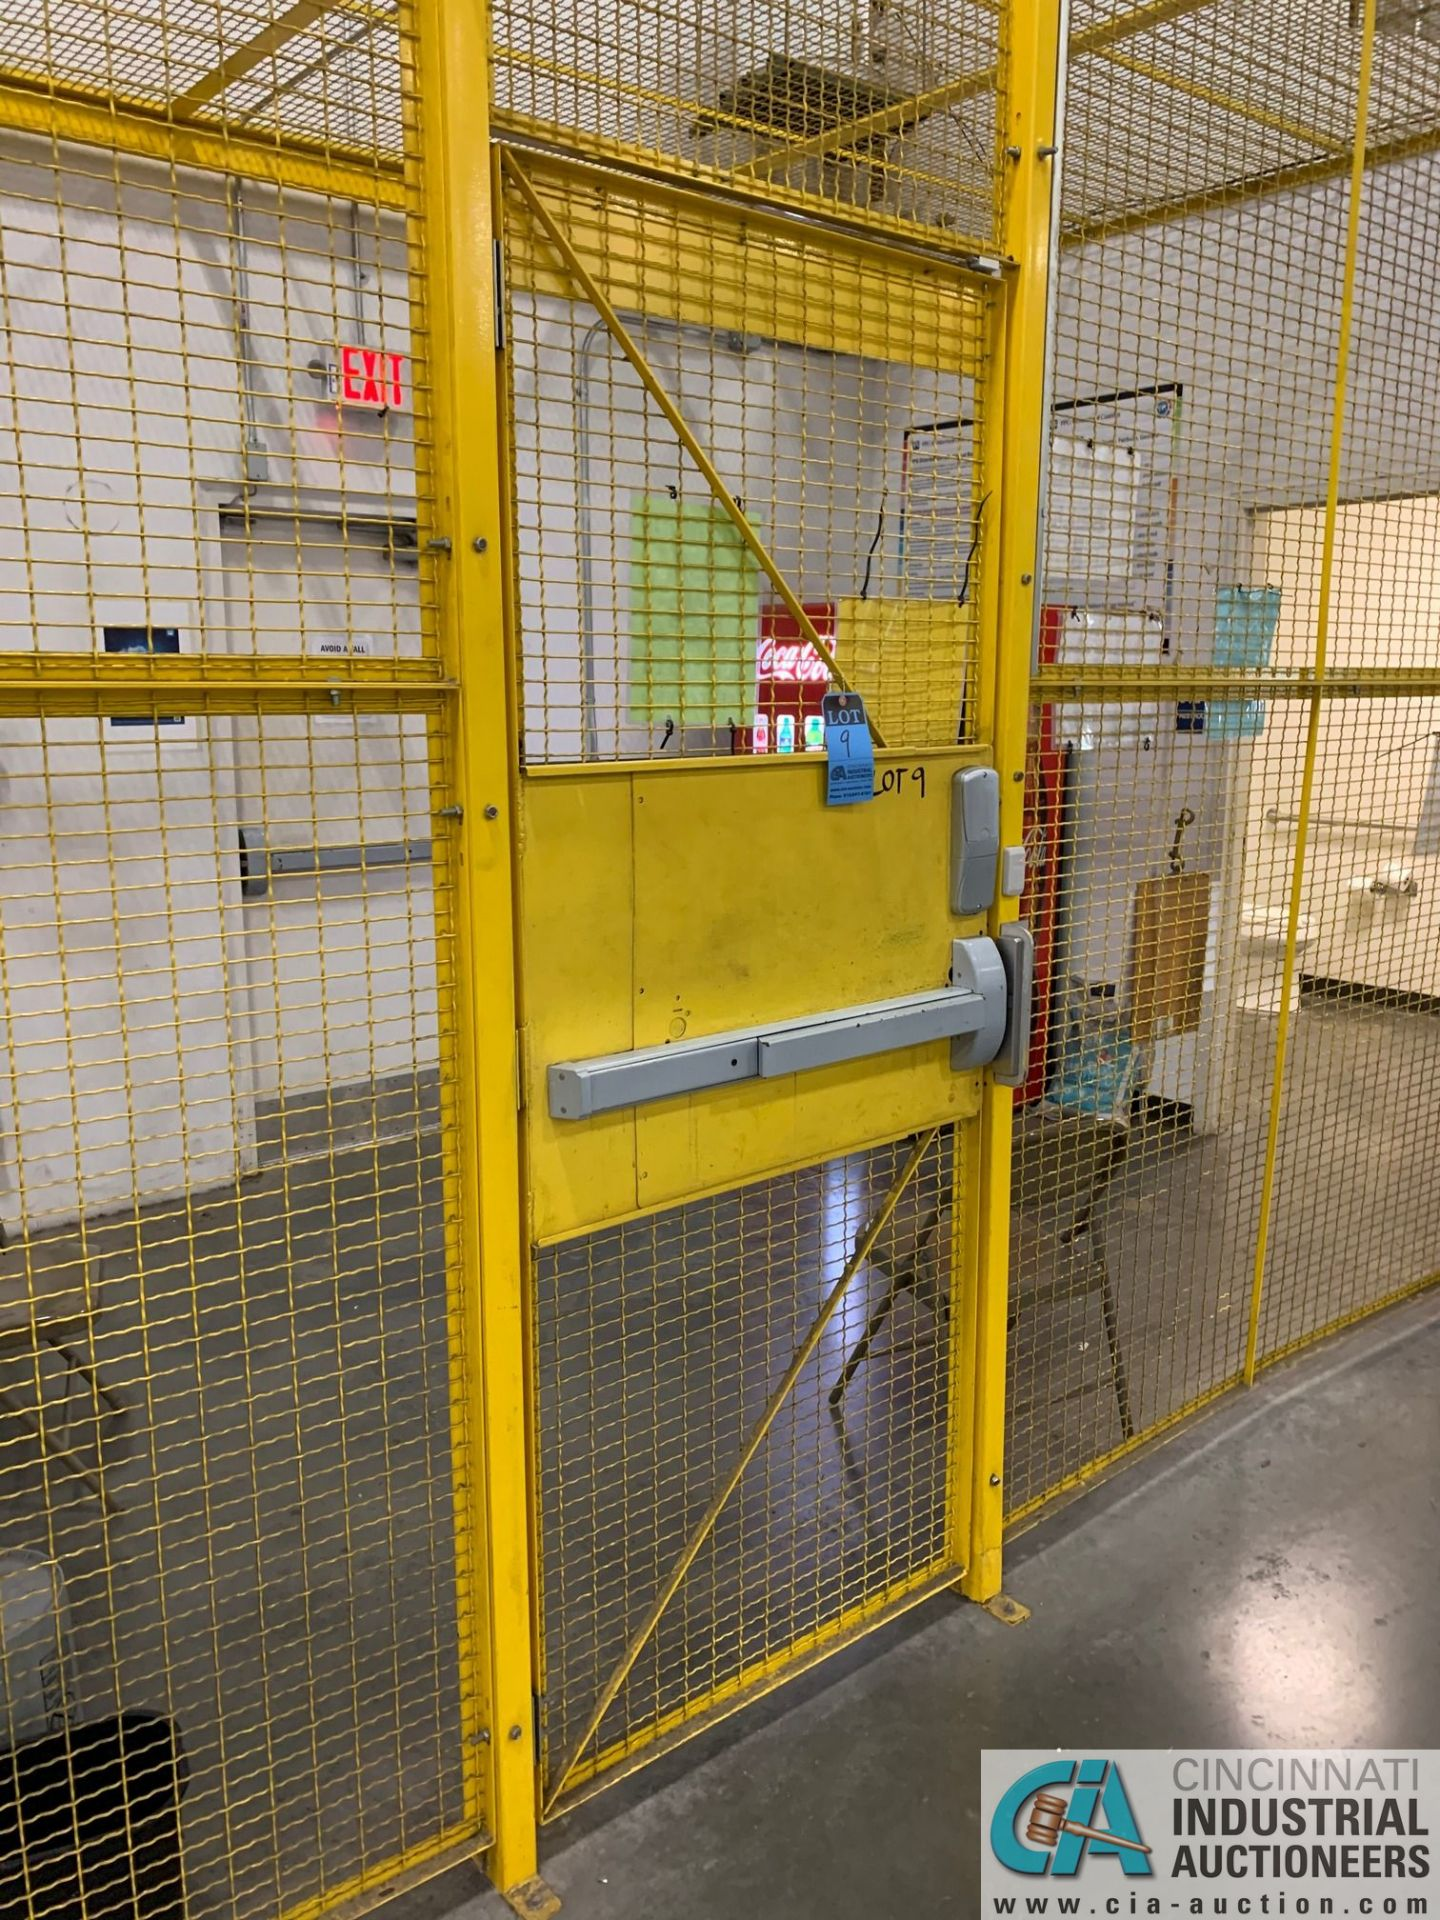 SAFETY CAGE - BACK DRIVERS (5400 OAKLEY INDUSTRIAL BLVD., FAIRBURN, GA 30213) - Image 3 of 7